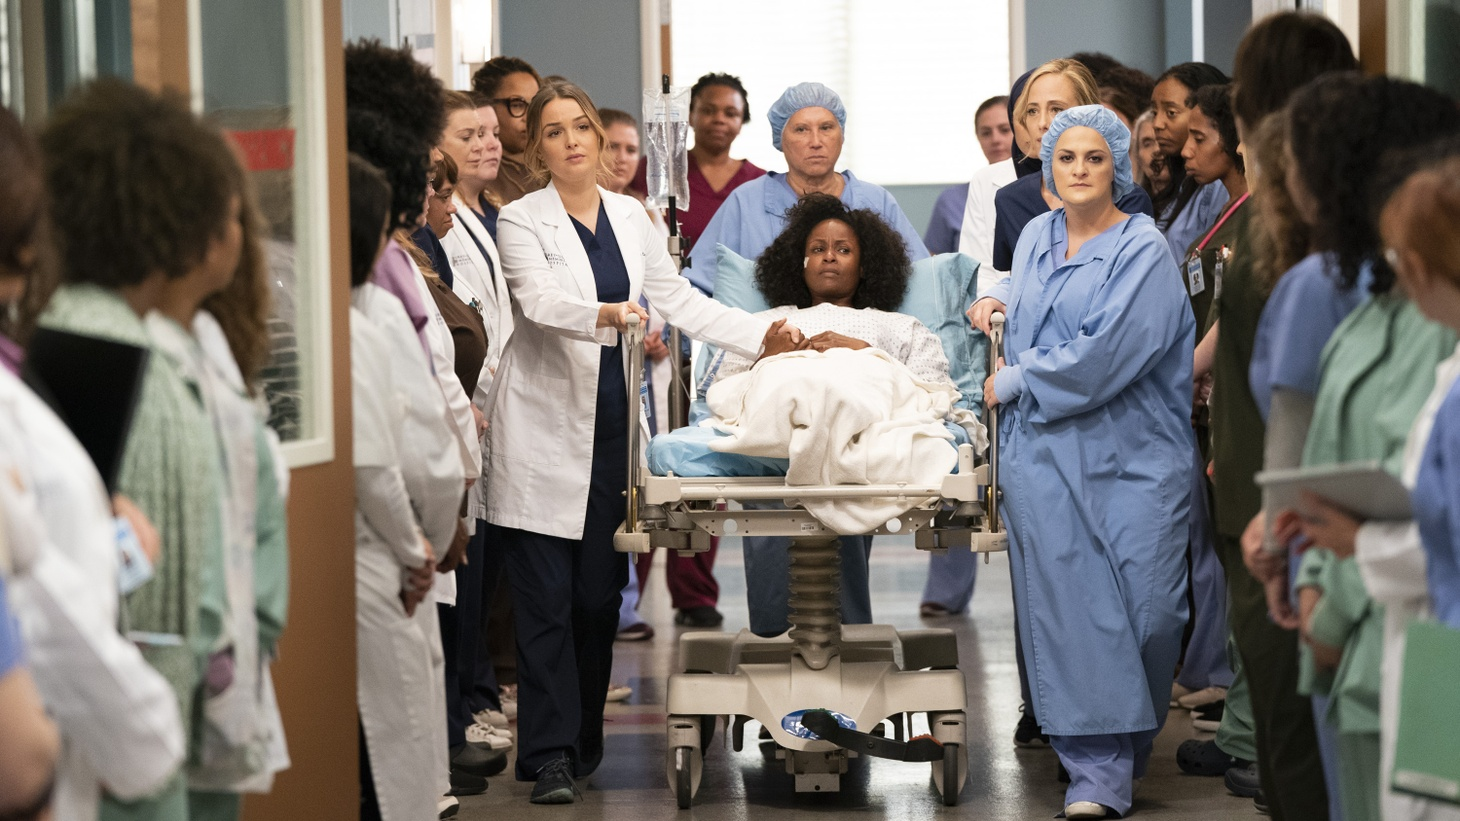 Grey's Anatomy episode 'Silent All These Years.' Writer Elisabeth Finch, on right.